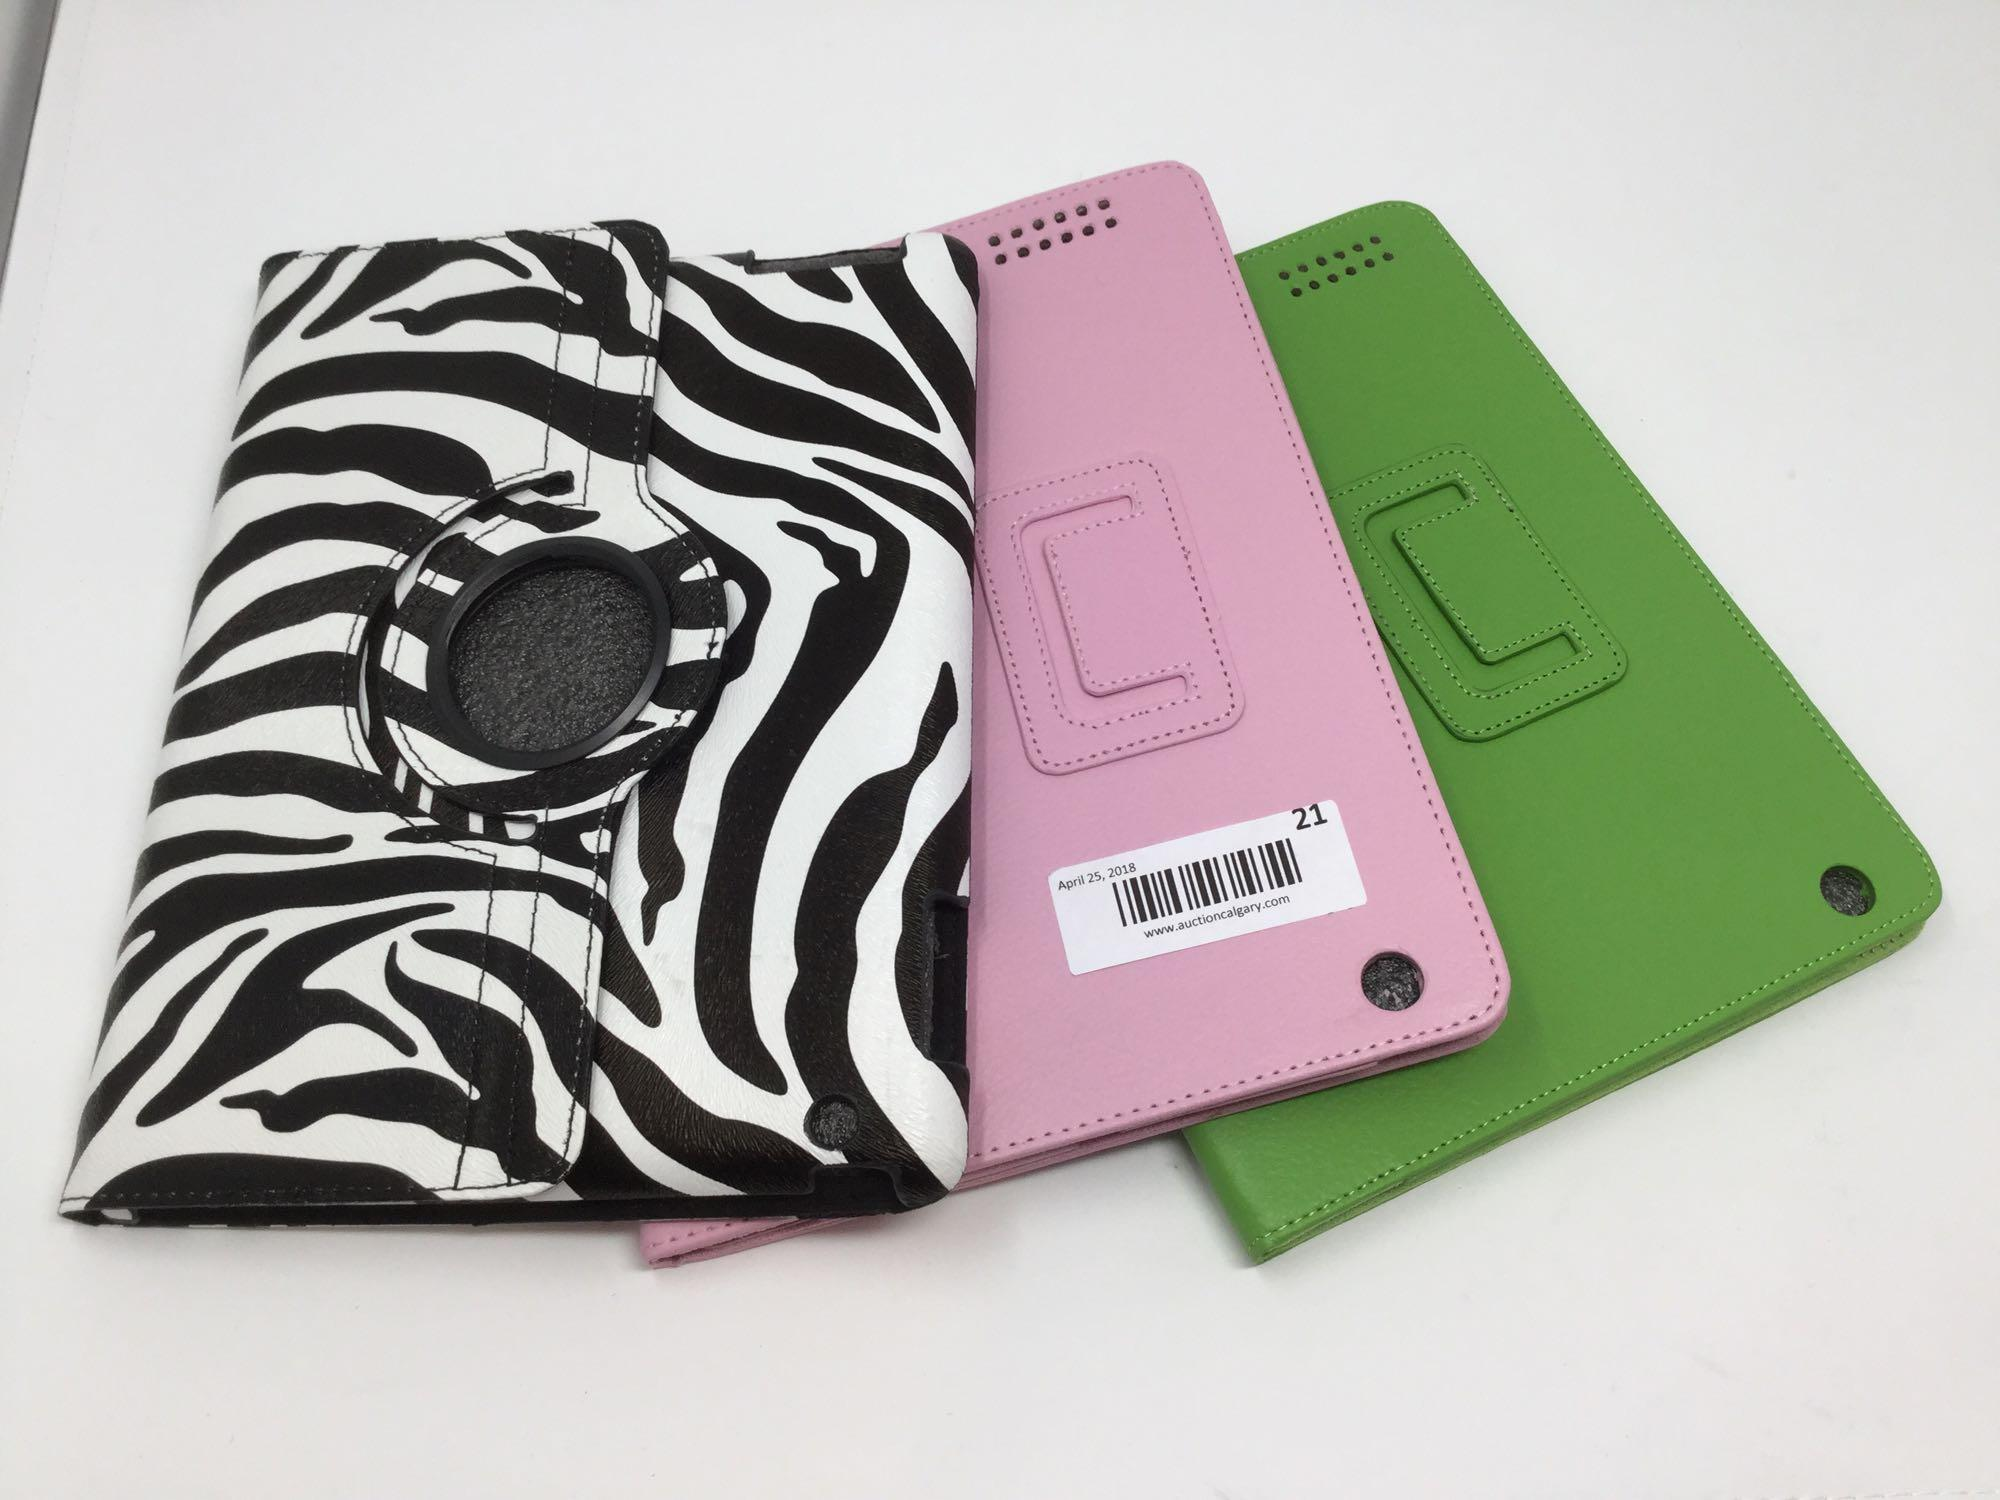 Lot 21 - Lot of 3 - iPad Covers